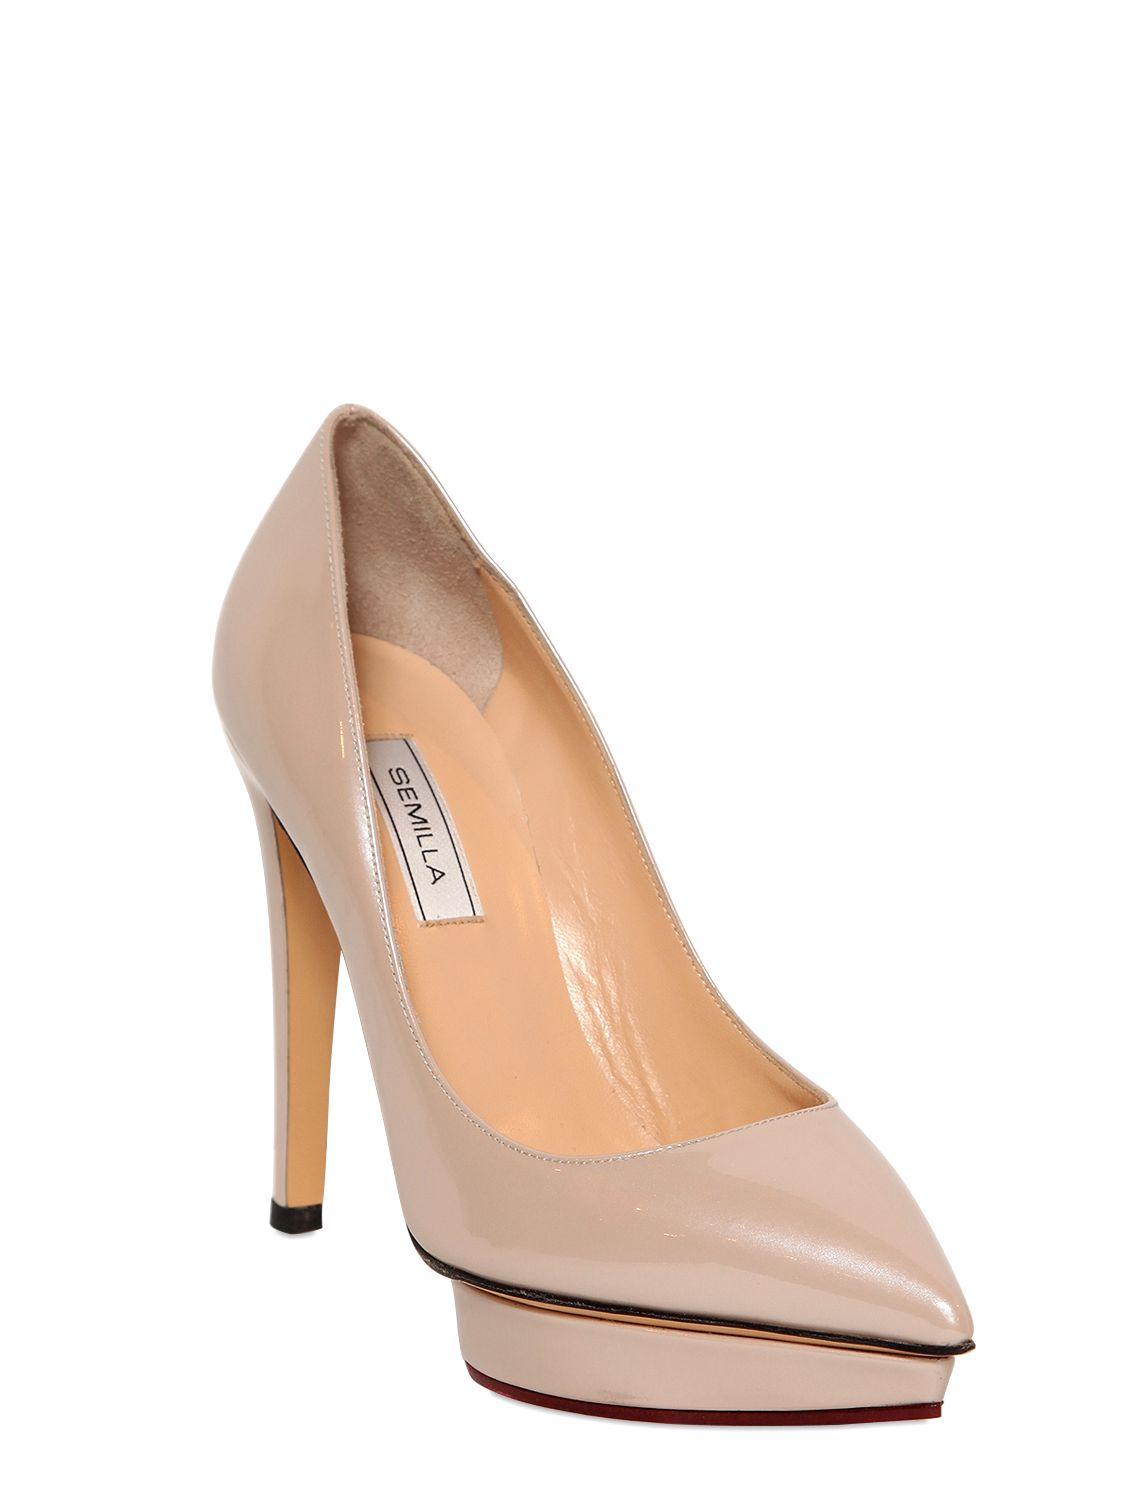 7e248d0ae829 Lyst - Semilla 120mm Glossy Patent Leather Pumps in Natural